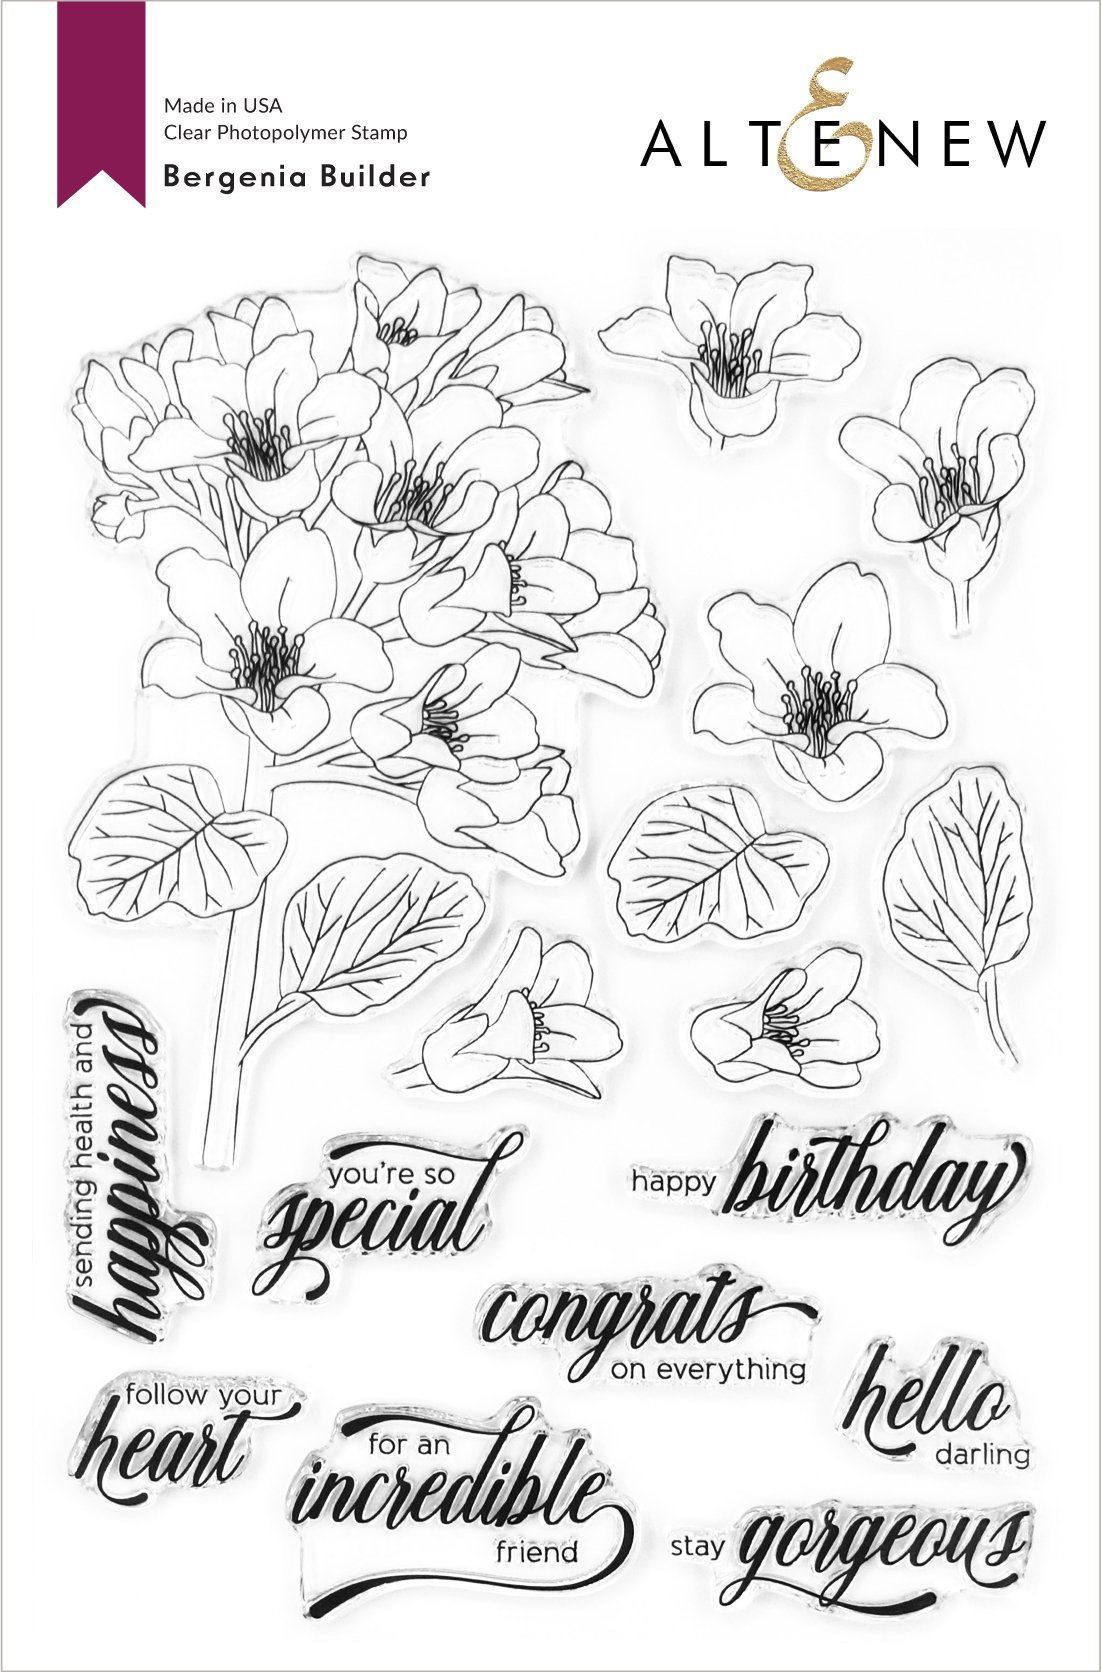 *NEW* - Altenew - Bergenia Builder Stamp Set